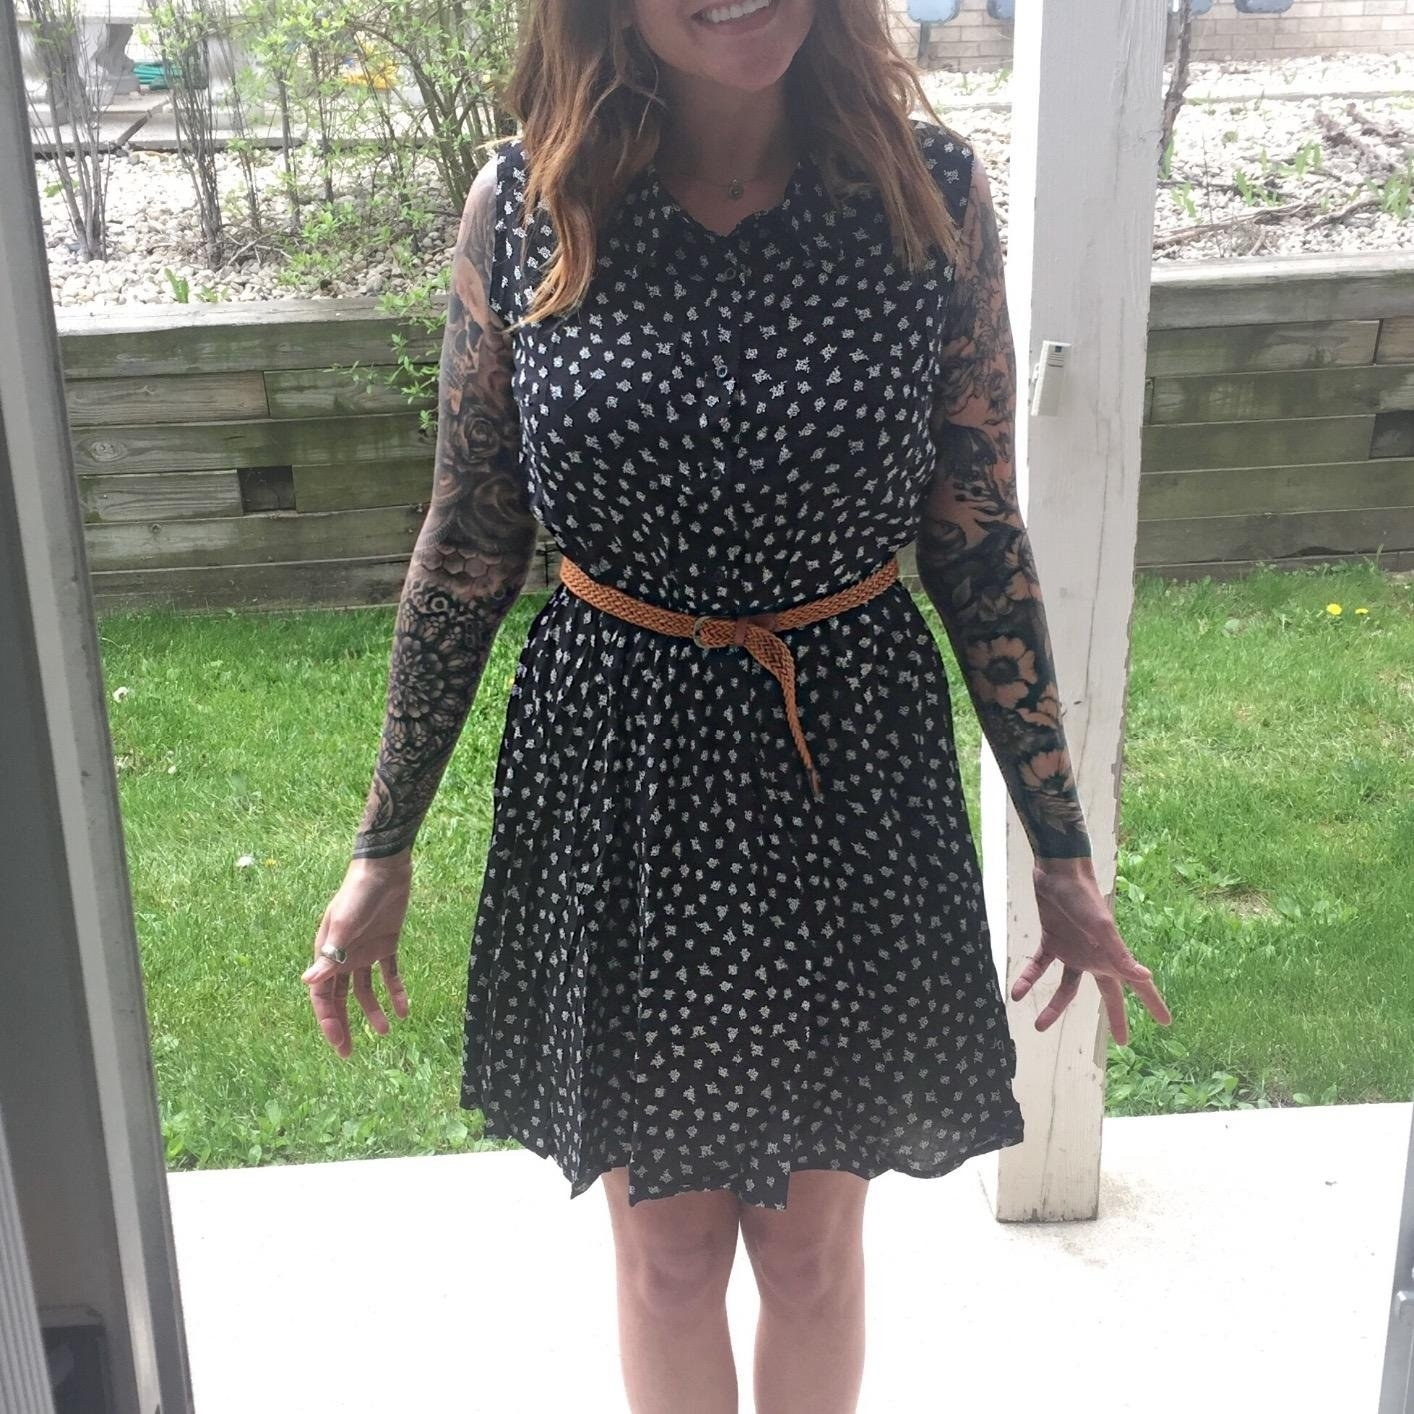 reviewer wears short sleeve dress with cat pattern